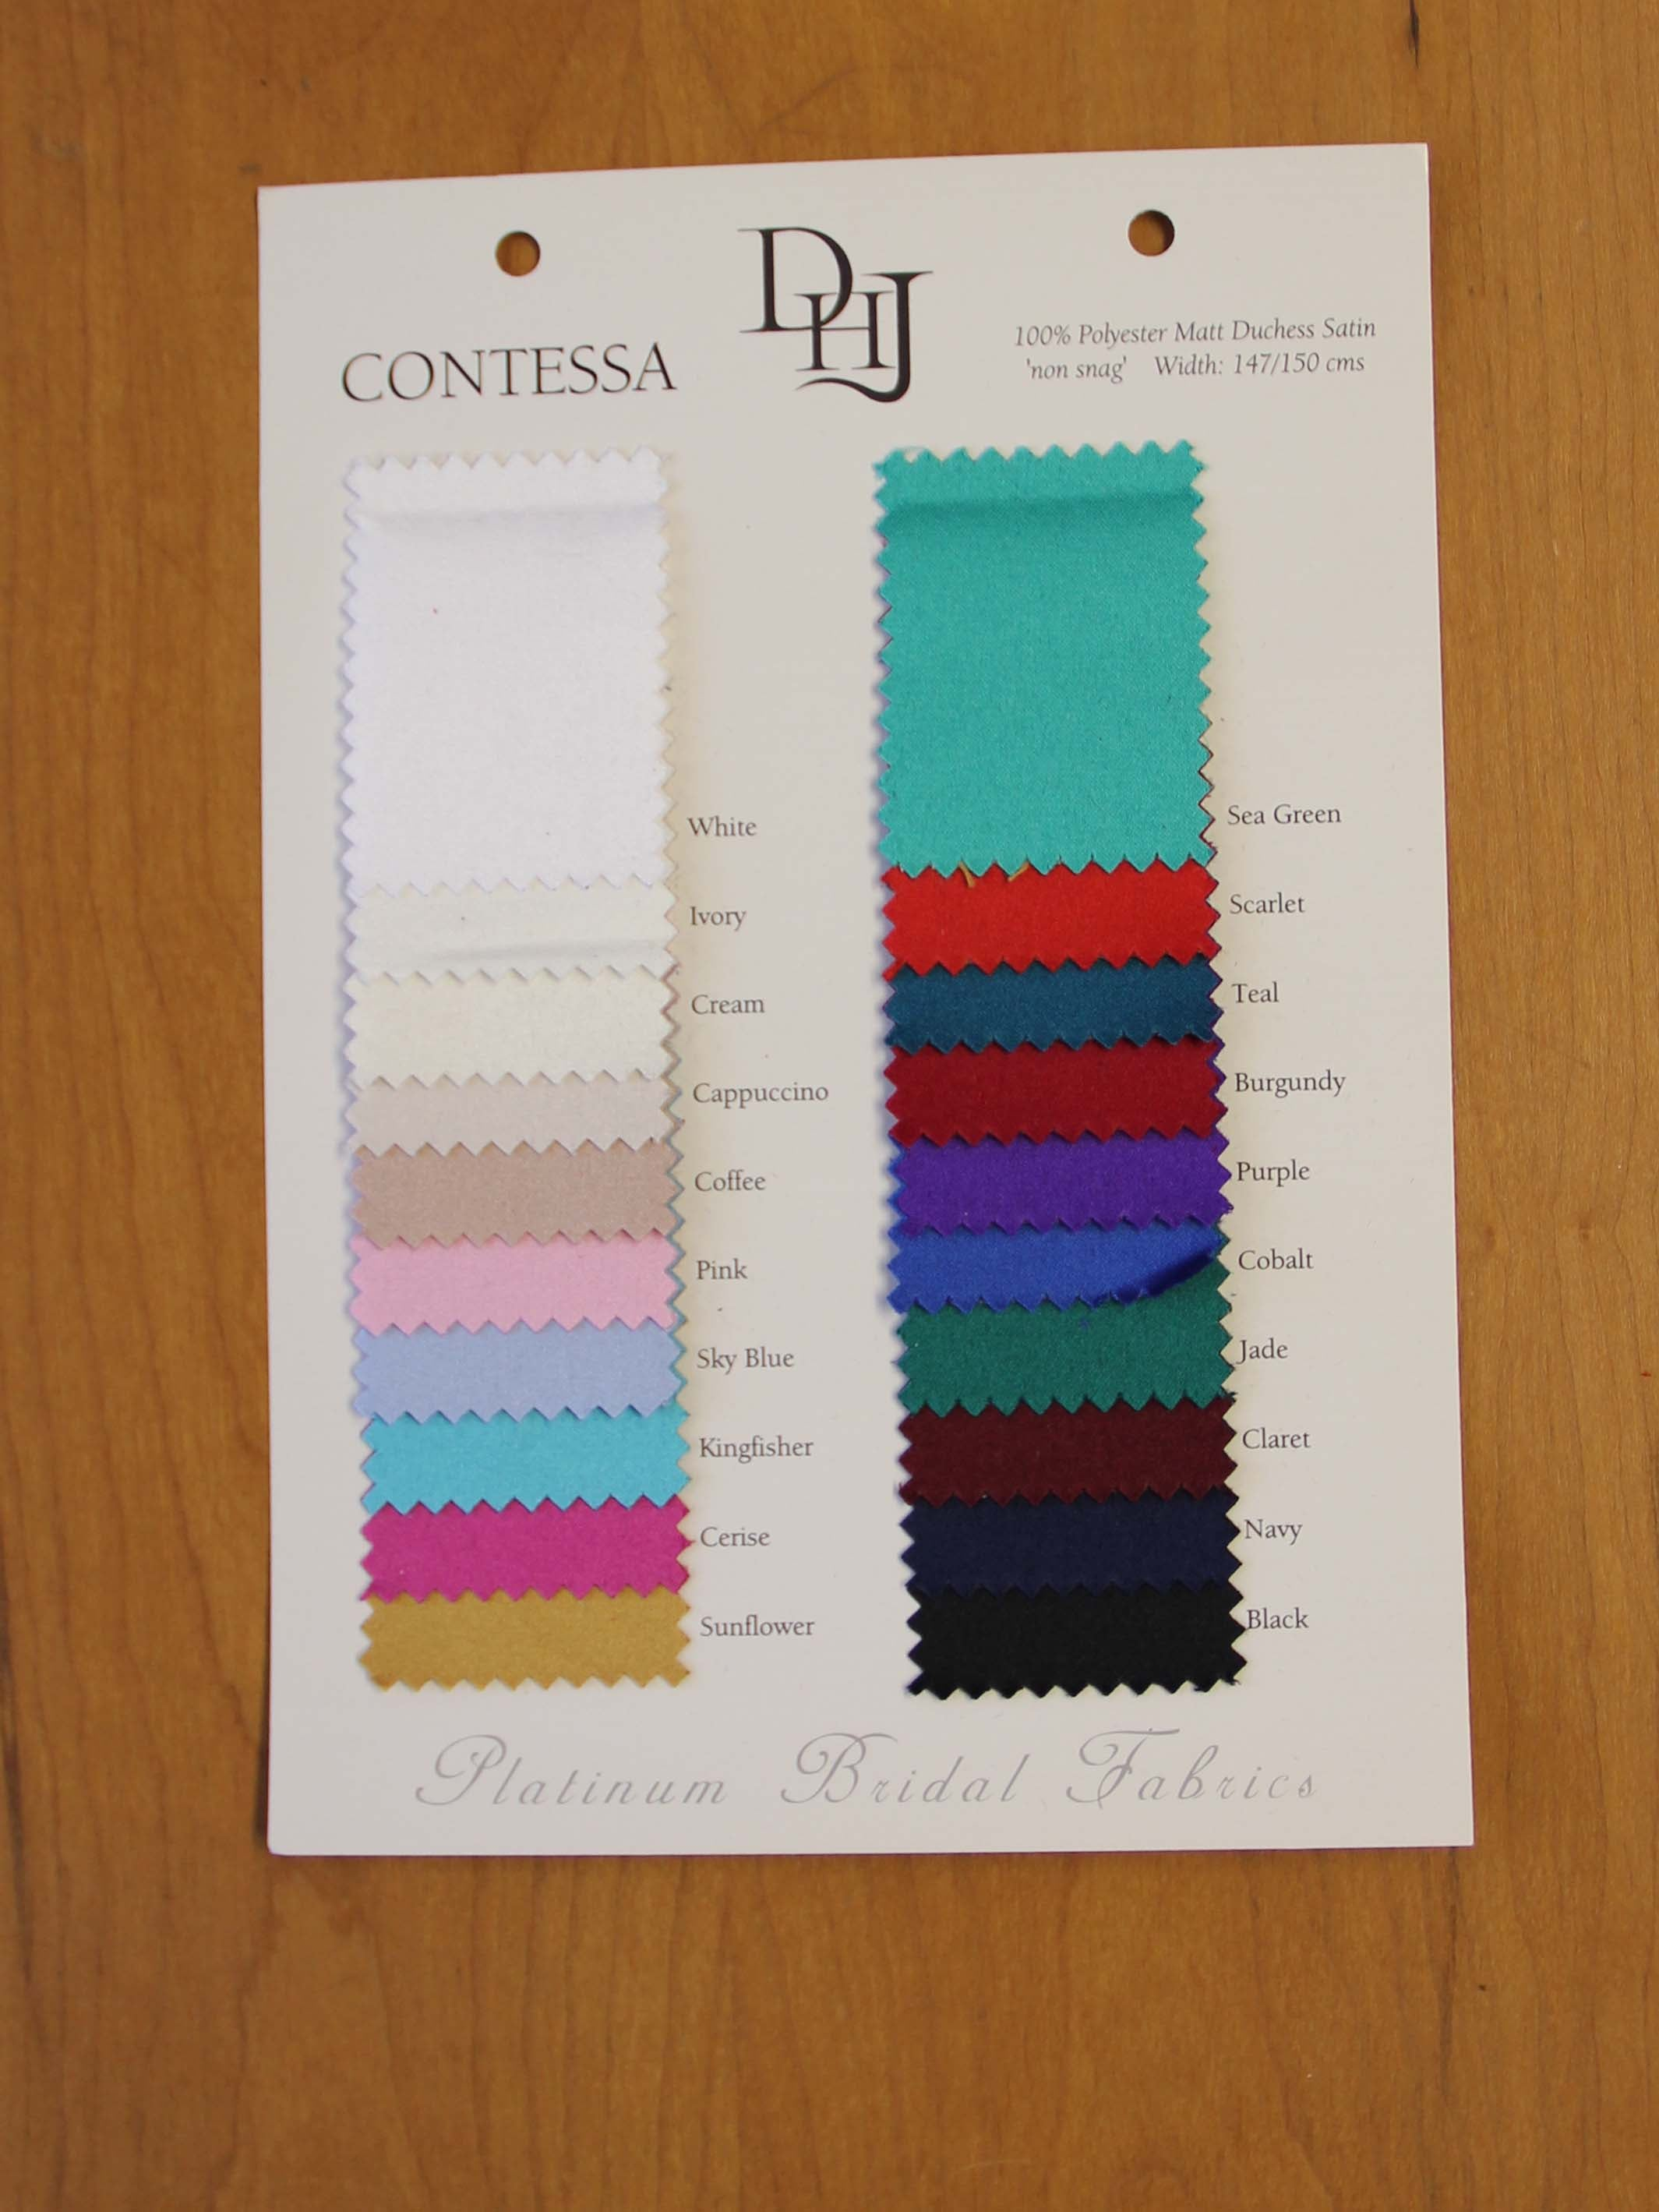 Sample Card of Polyester Satin – Contessa